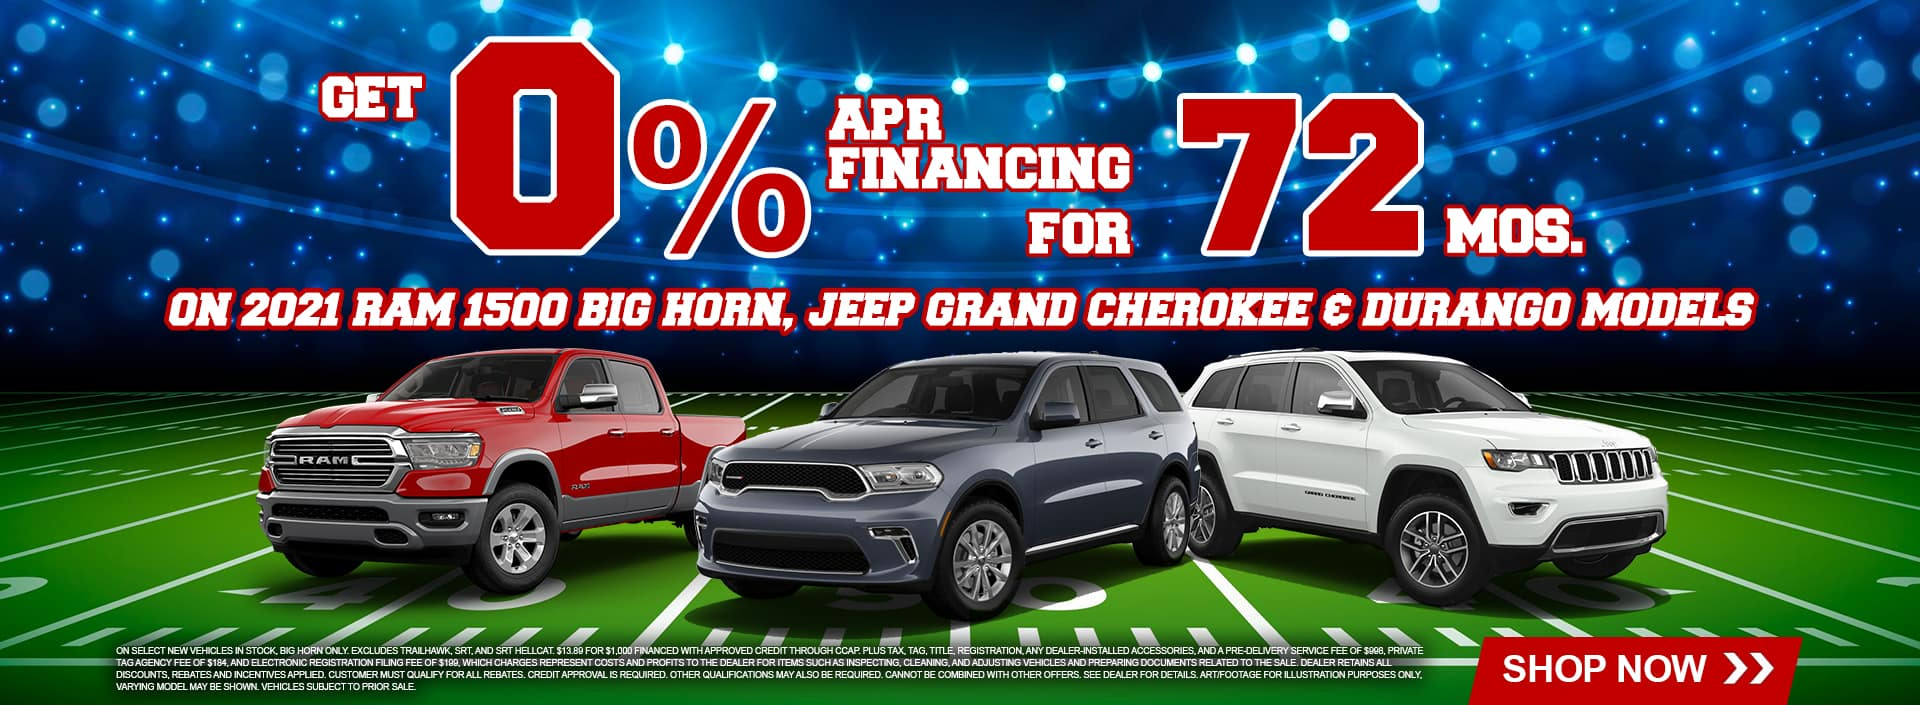 2021 RAM 1500 Big Horn, 2021 Jeep Grand Cherokee and 2021 Durango Models Get 0% APR Financing for 72 Months